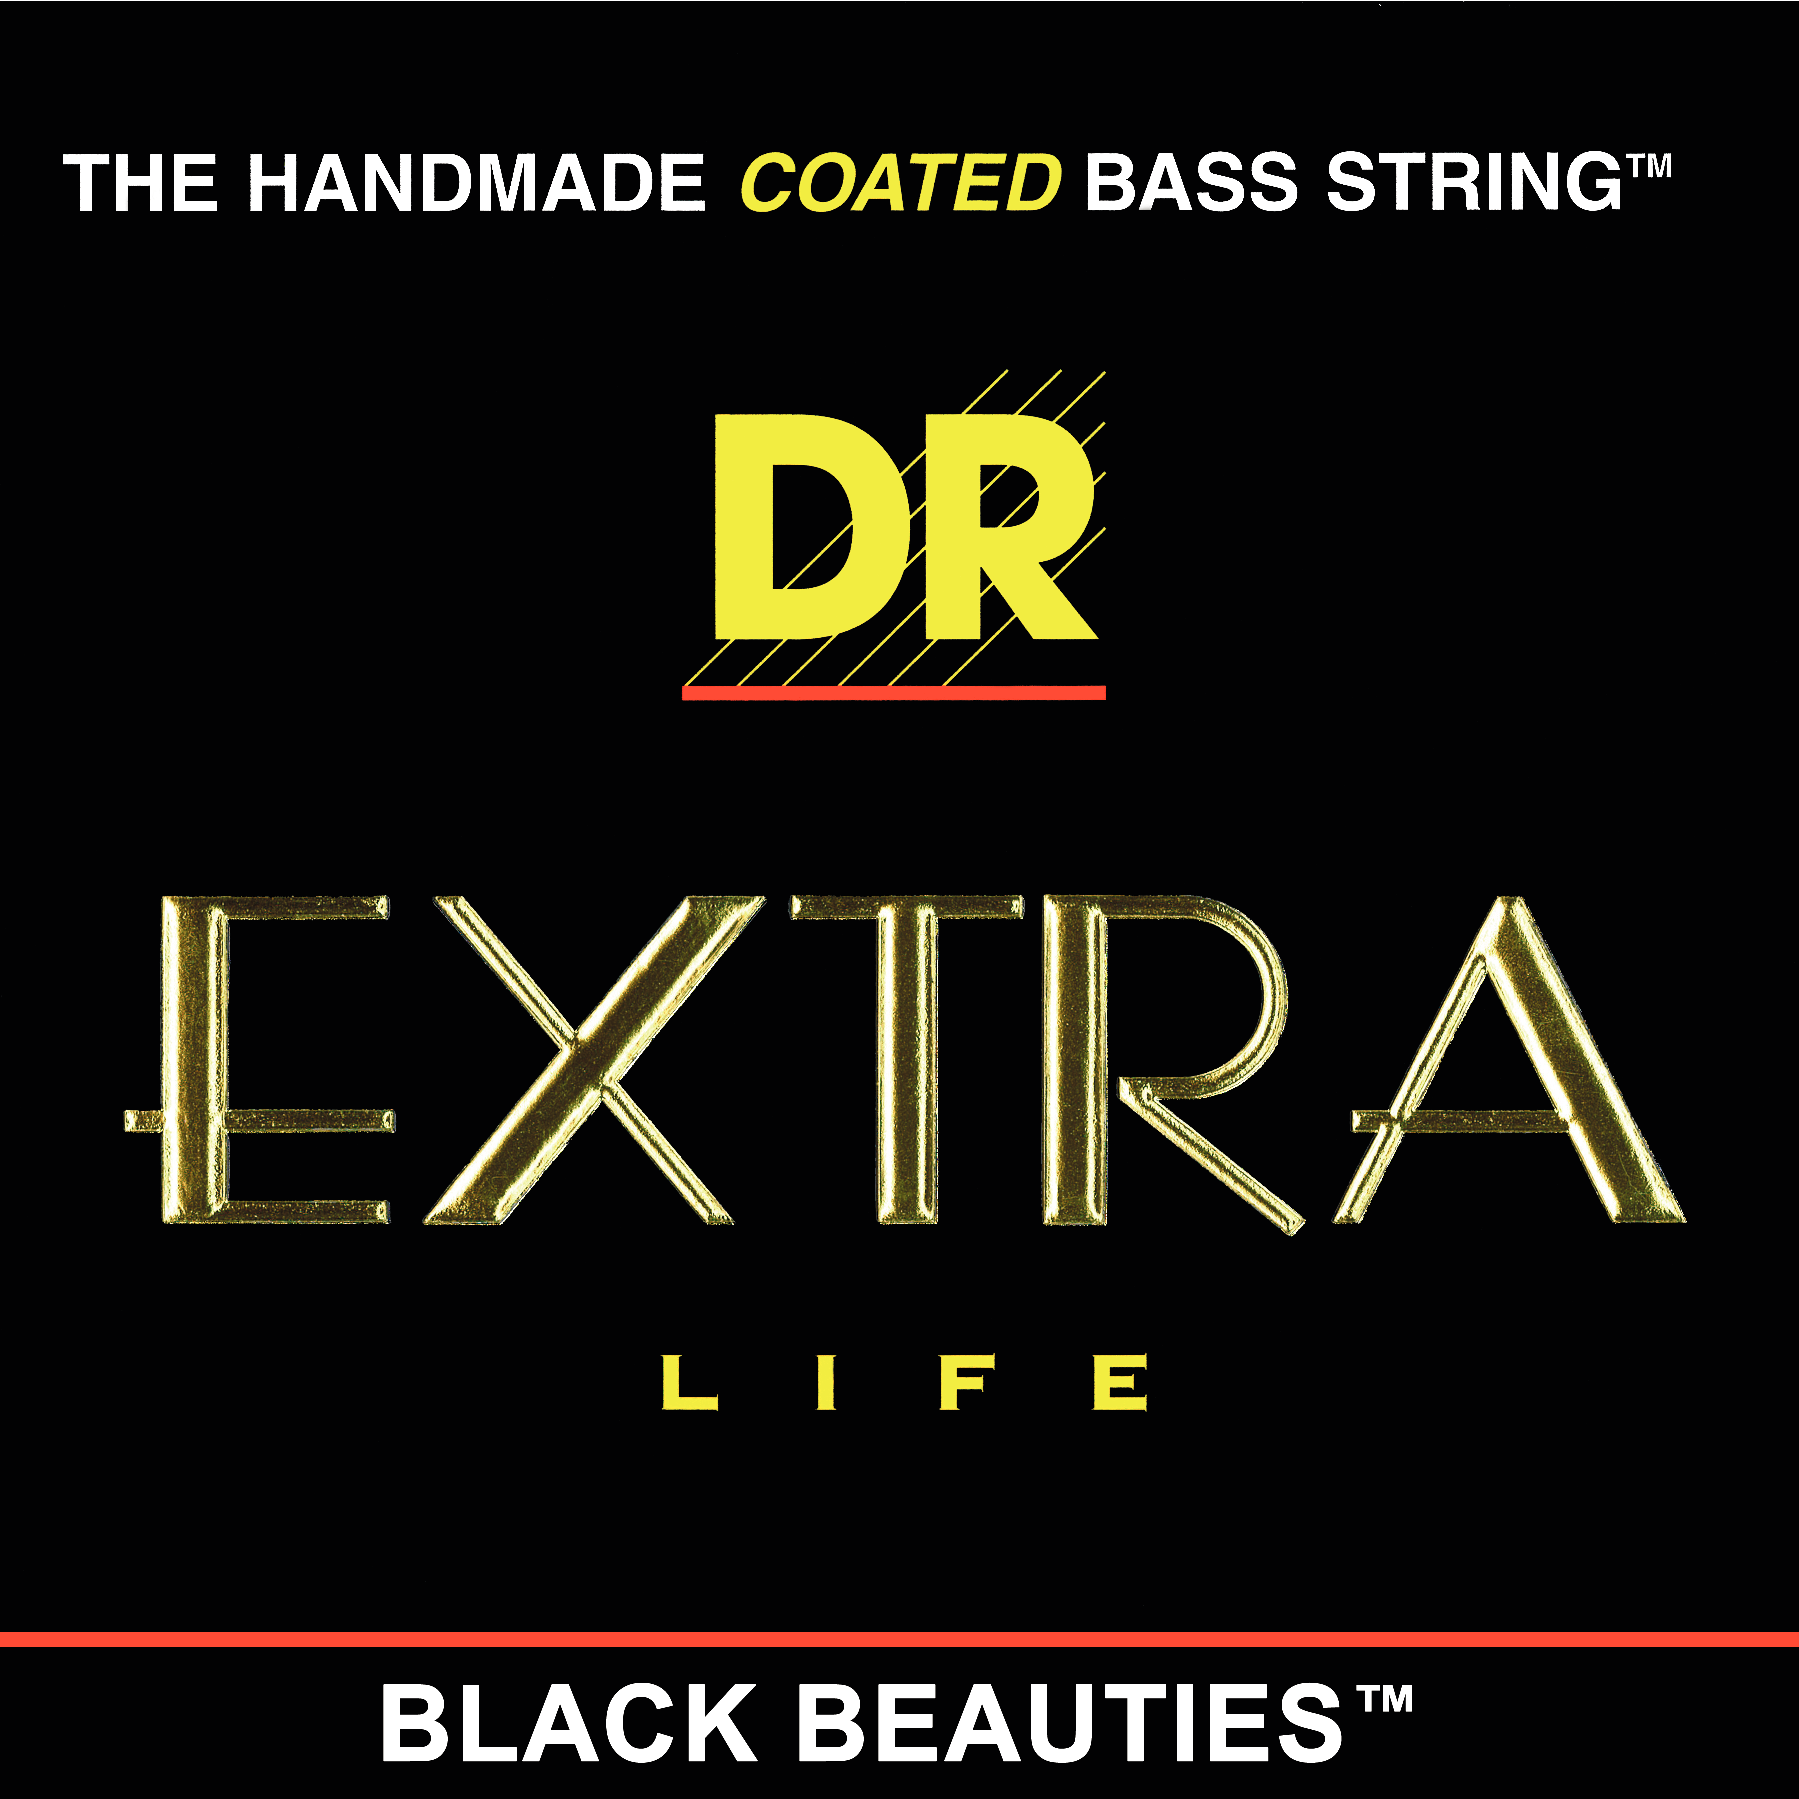 Extra Black Beauties Medium j(.045 -.105), DR B EXBK BKB-45